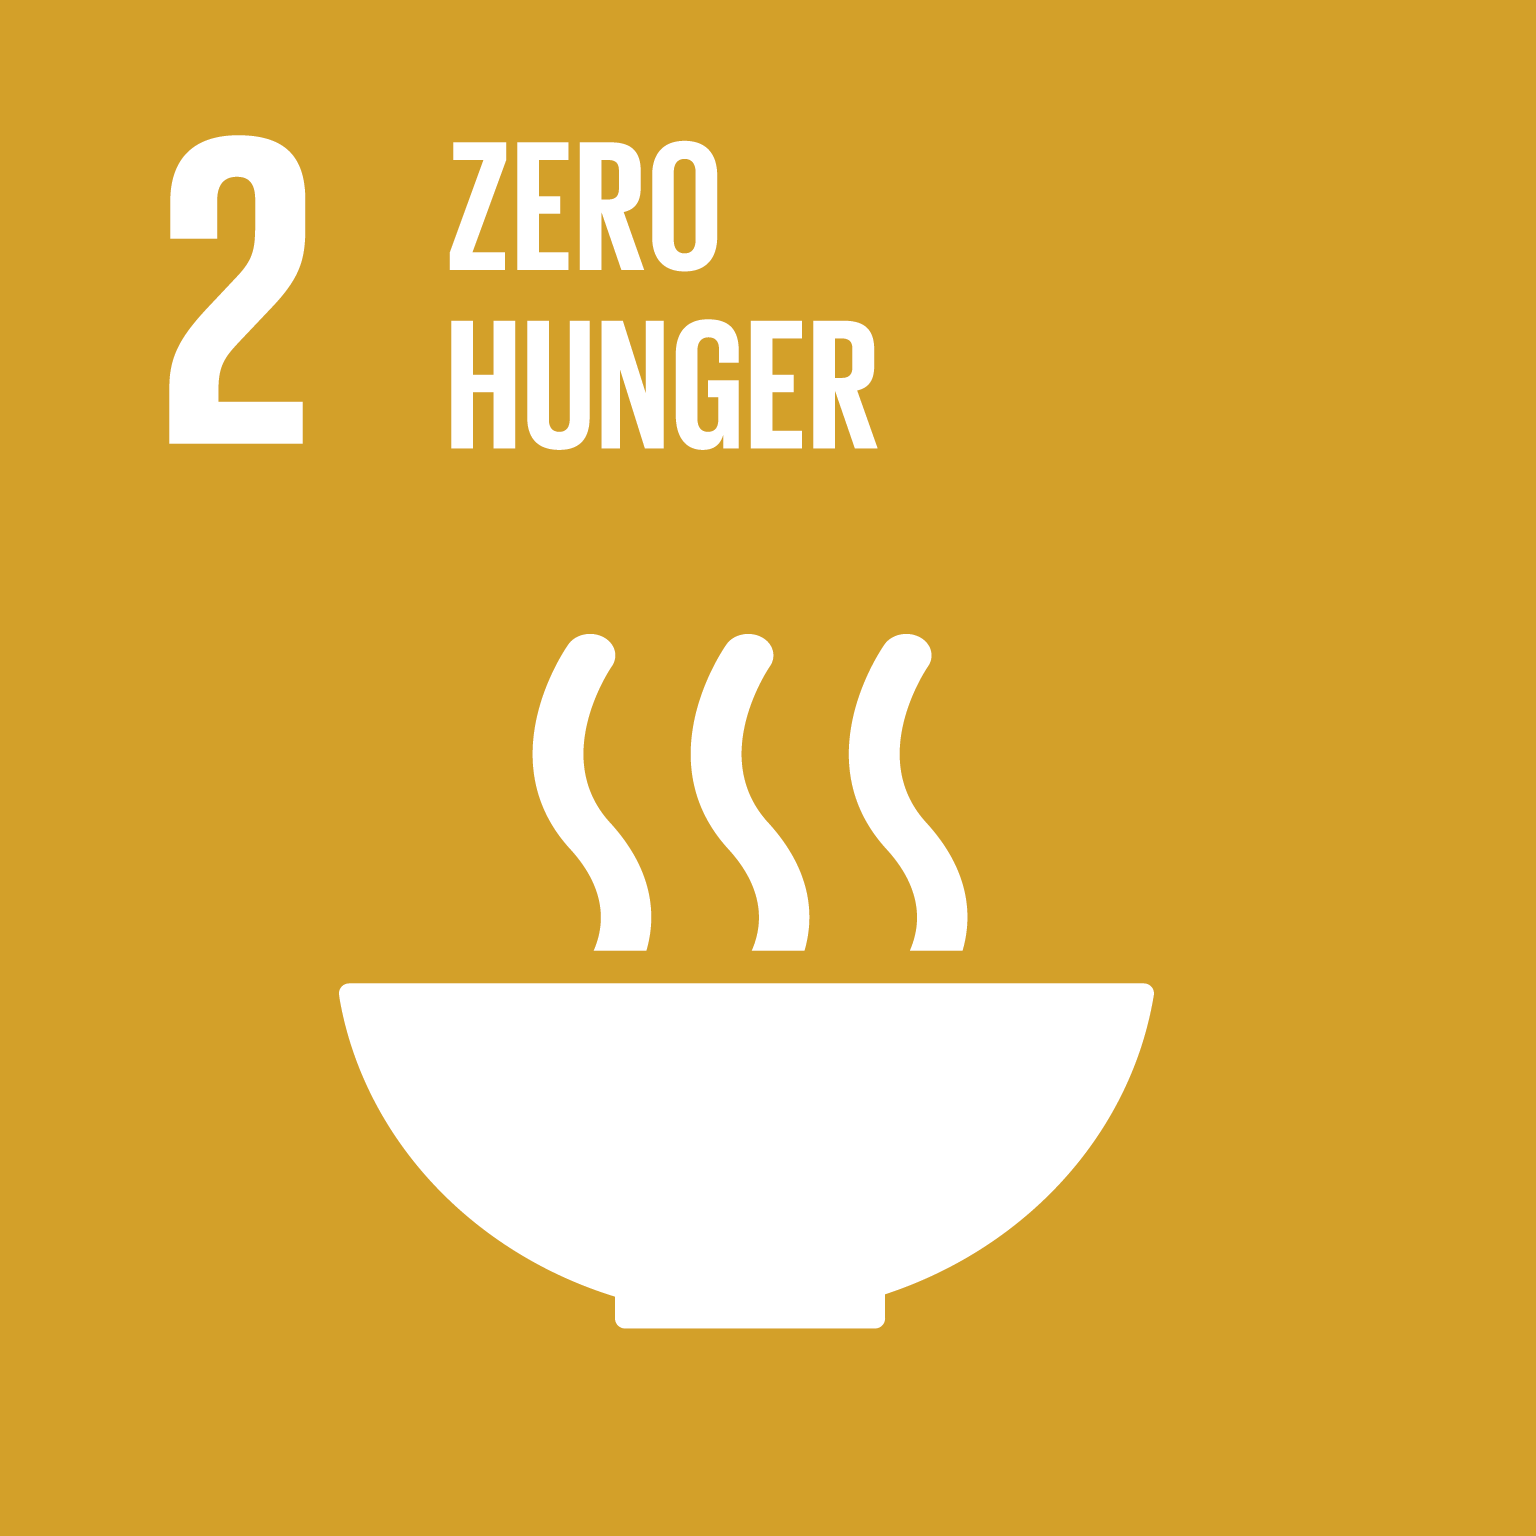 icons-zero-hunger